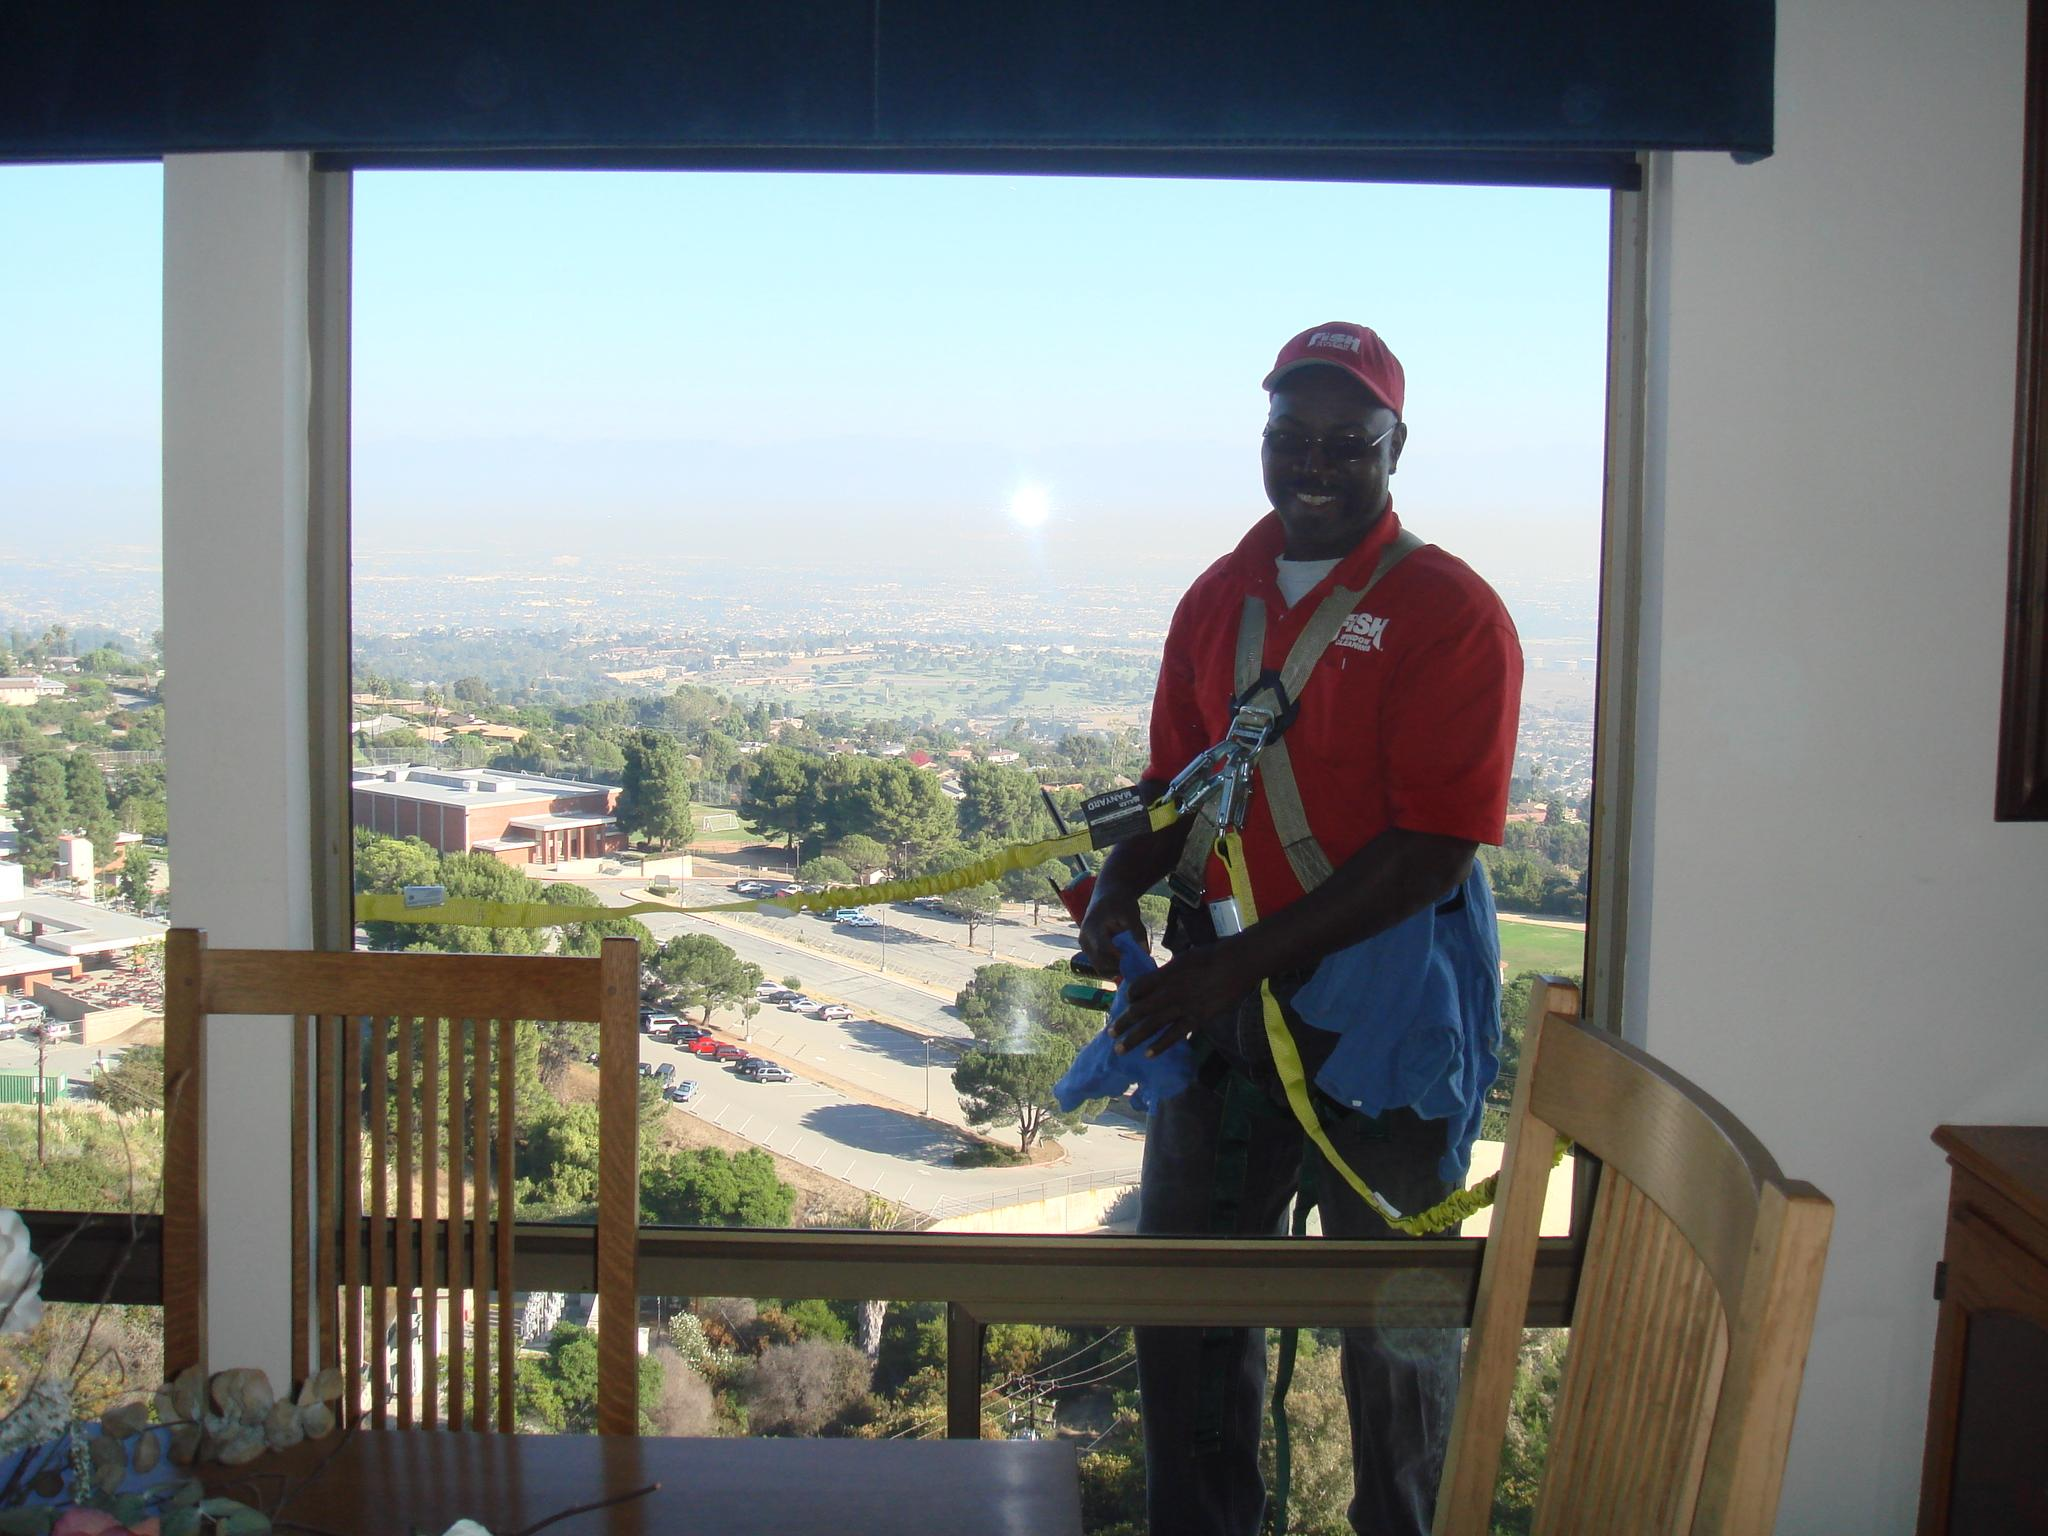 Fish window cleaning los angeles south bay ca for Fish window cleaning reviews